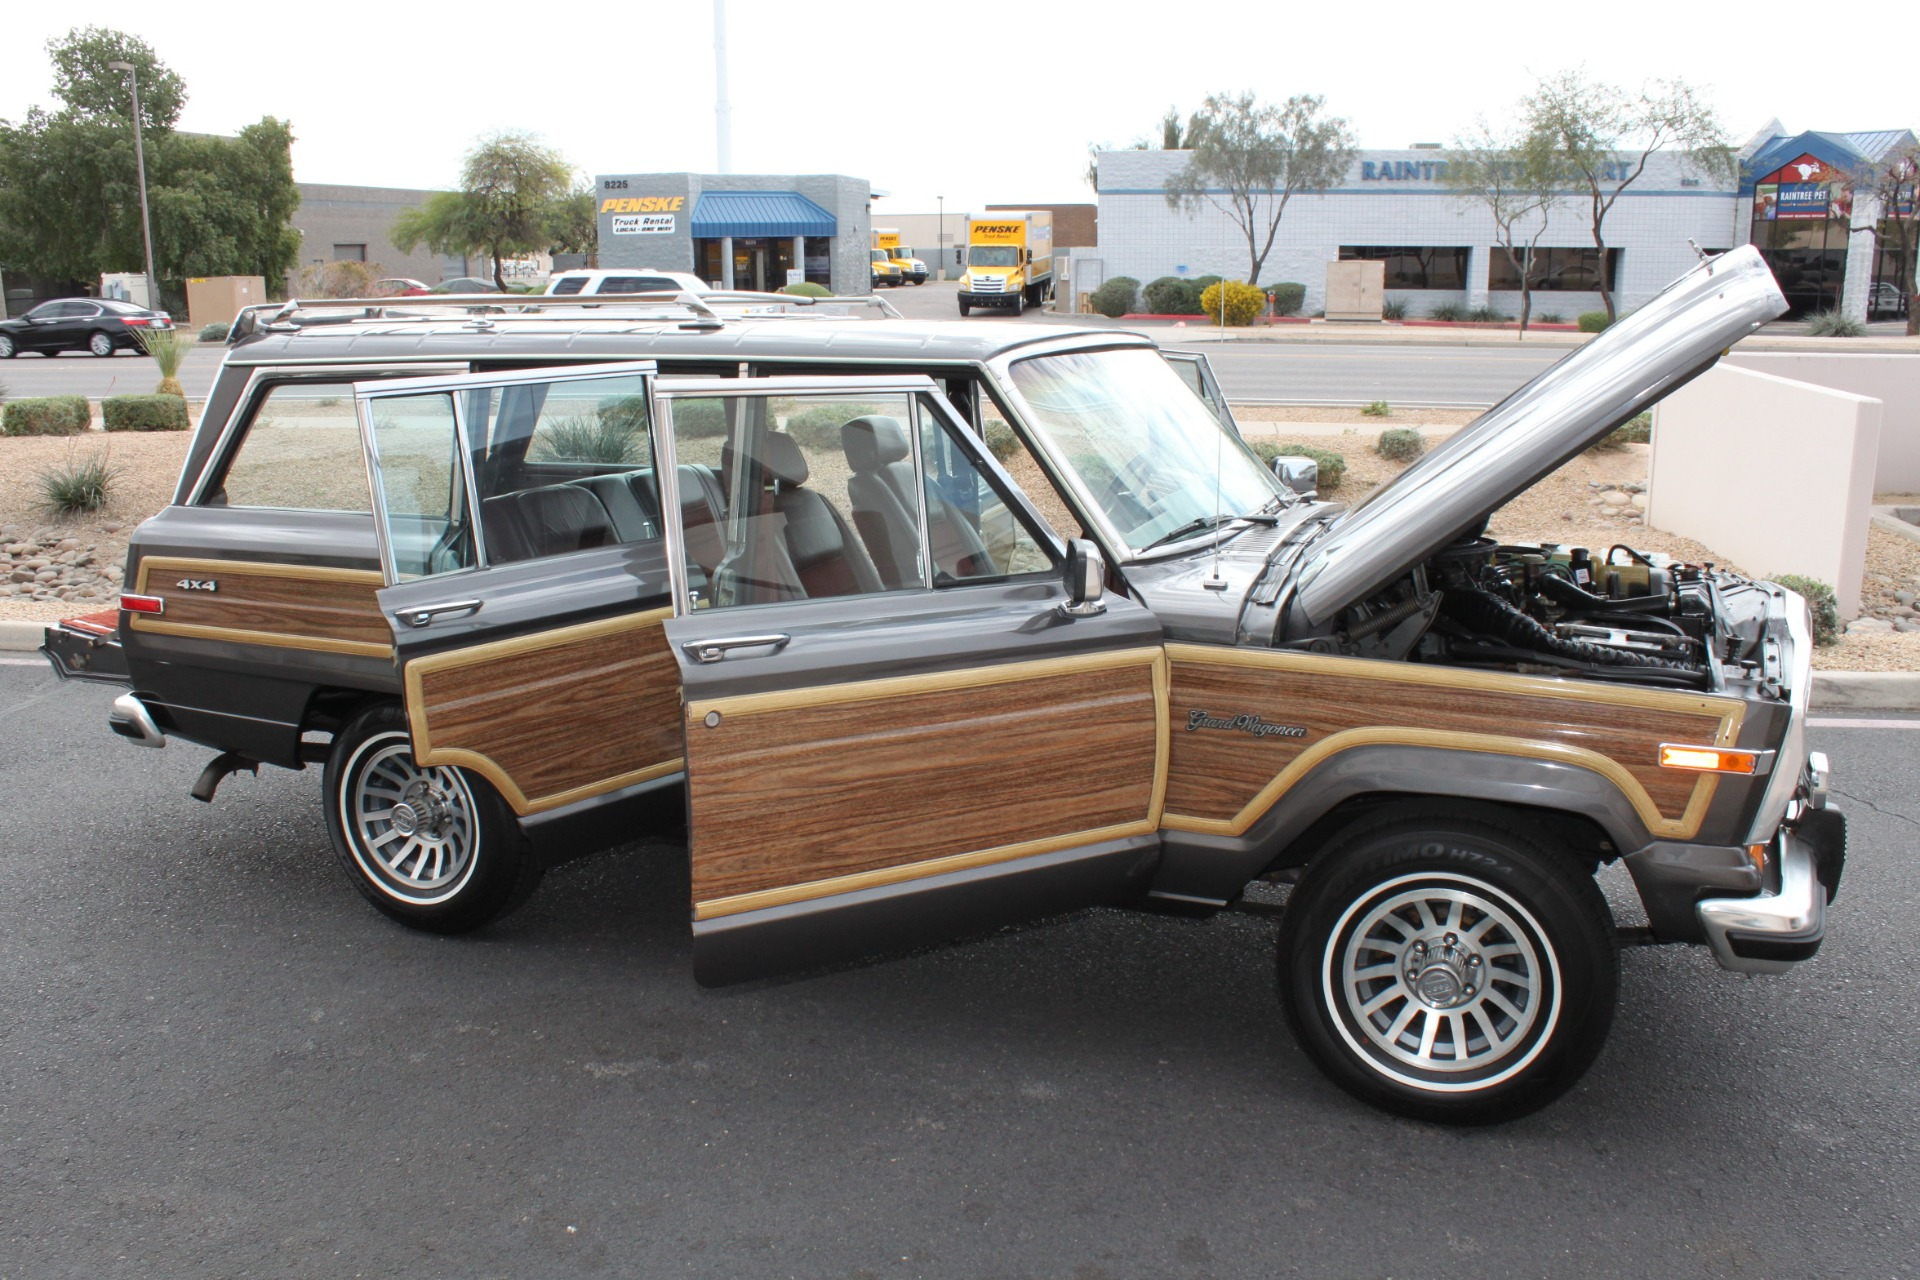 Used-1989-Jeep-Grand-Wagoneer-4X4-Lamborghini